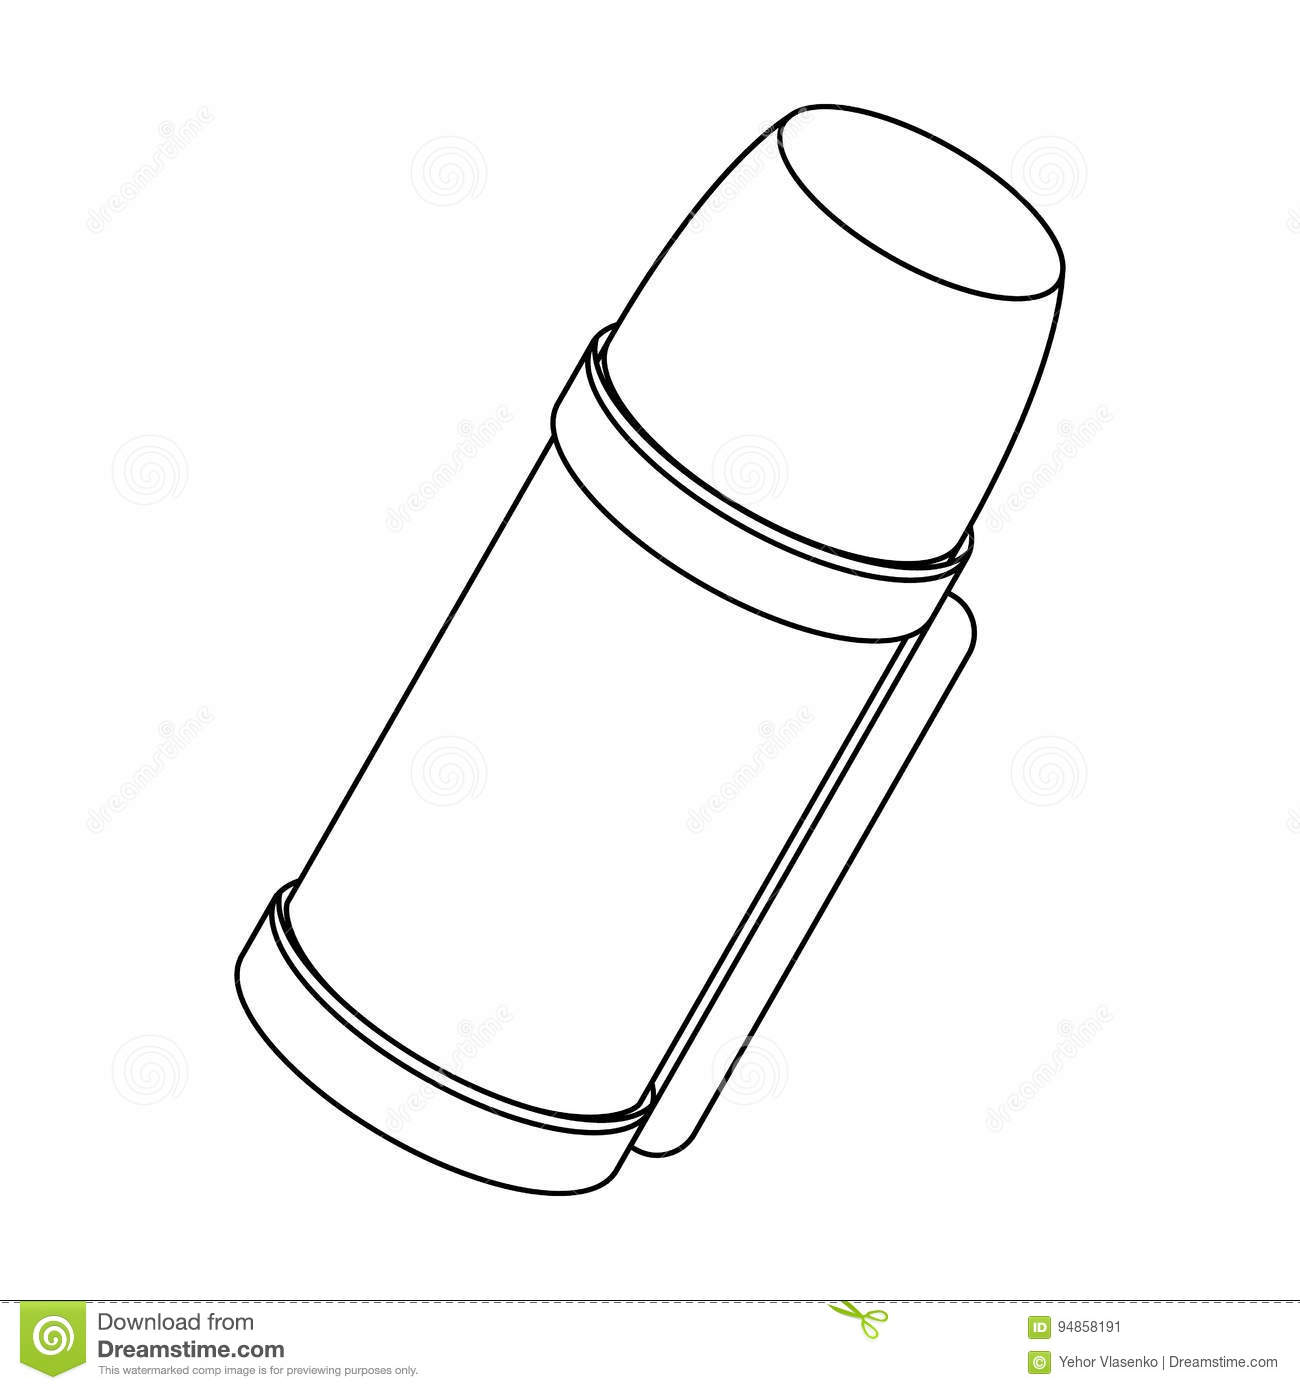 Clipart Empty Flask 2 moreover Whirlpool Jet Crisp Gt 288 also Synthesis Of P Acetamidobenzenesulfonamide2016 05 27 as well 50 Caliber Bullet Bottle Opener Military Green also Clipart Science Bottle. on green flask